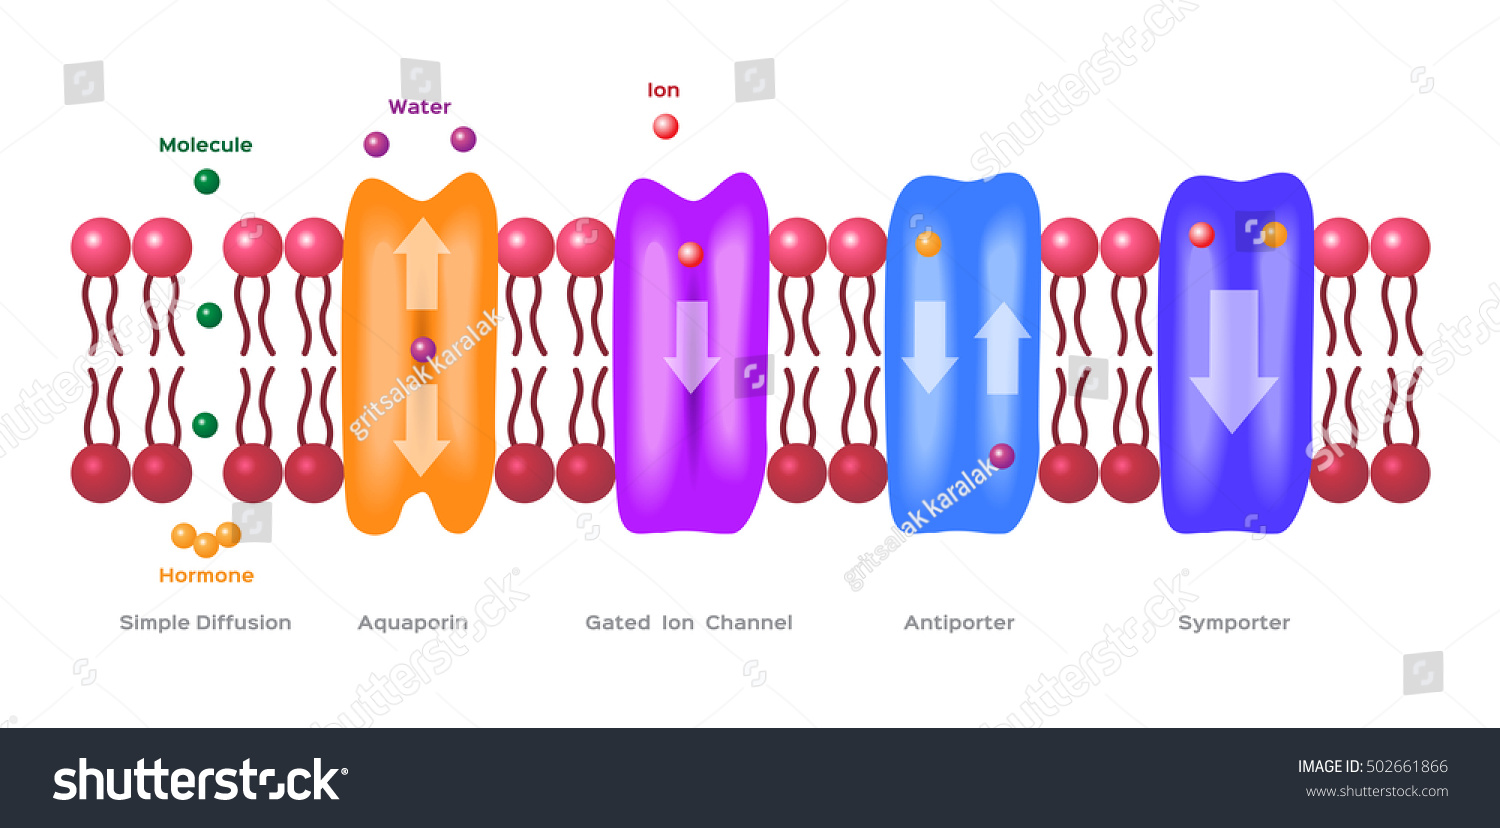 simple diffusion on cell transport mechanisms Active transport requires chemical energy because it is the movement of  biochemicals  three different mechanisms for passive transport in bilayer  membranes.